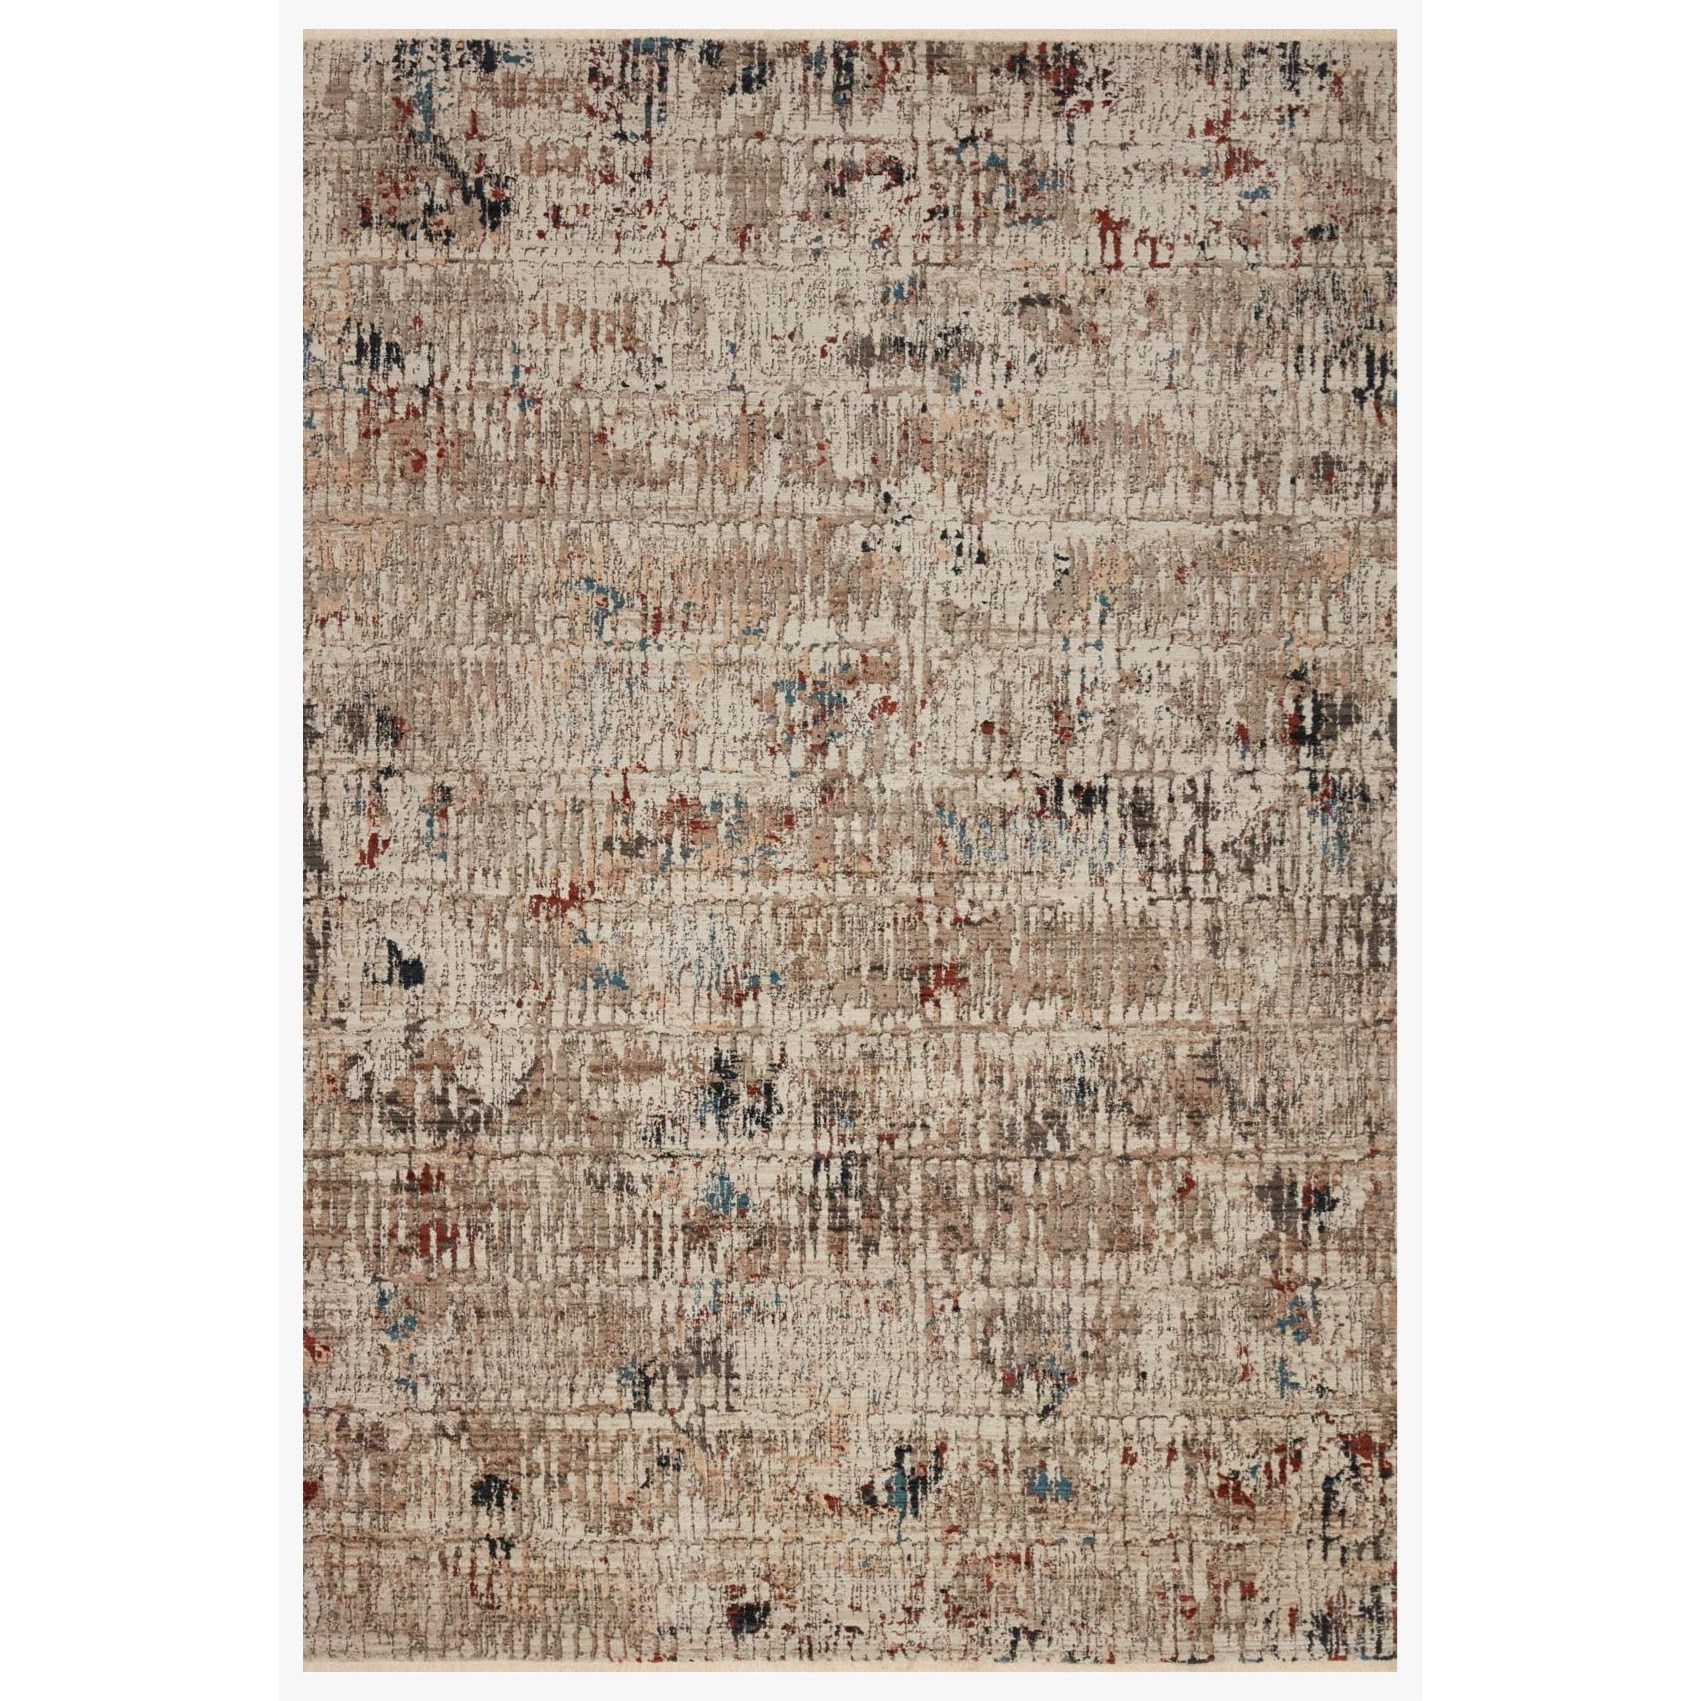 "Leigh 18"" x 18""  Ivory / Multi Rug by Loloi Rugs at Virginia Furniture Market"